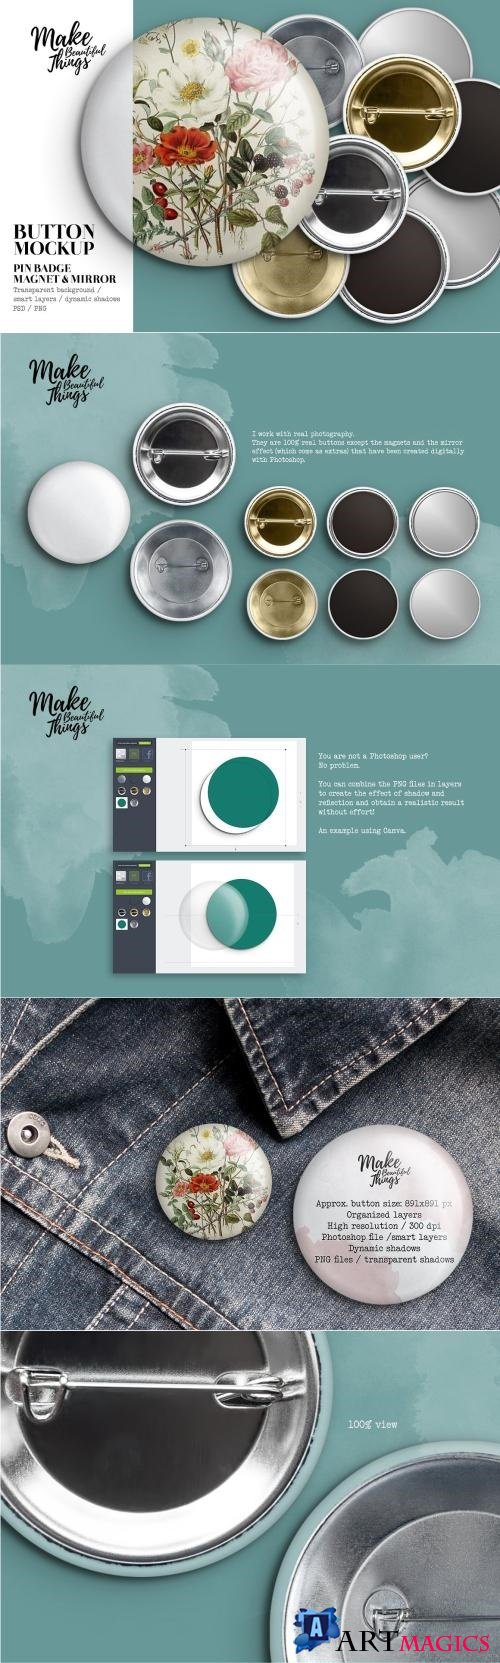 Isolated Pin Button Mockup #1818 - 2448349